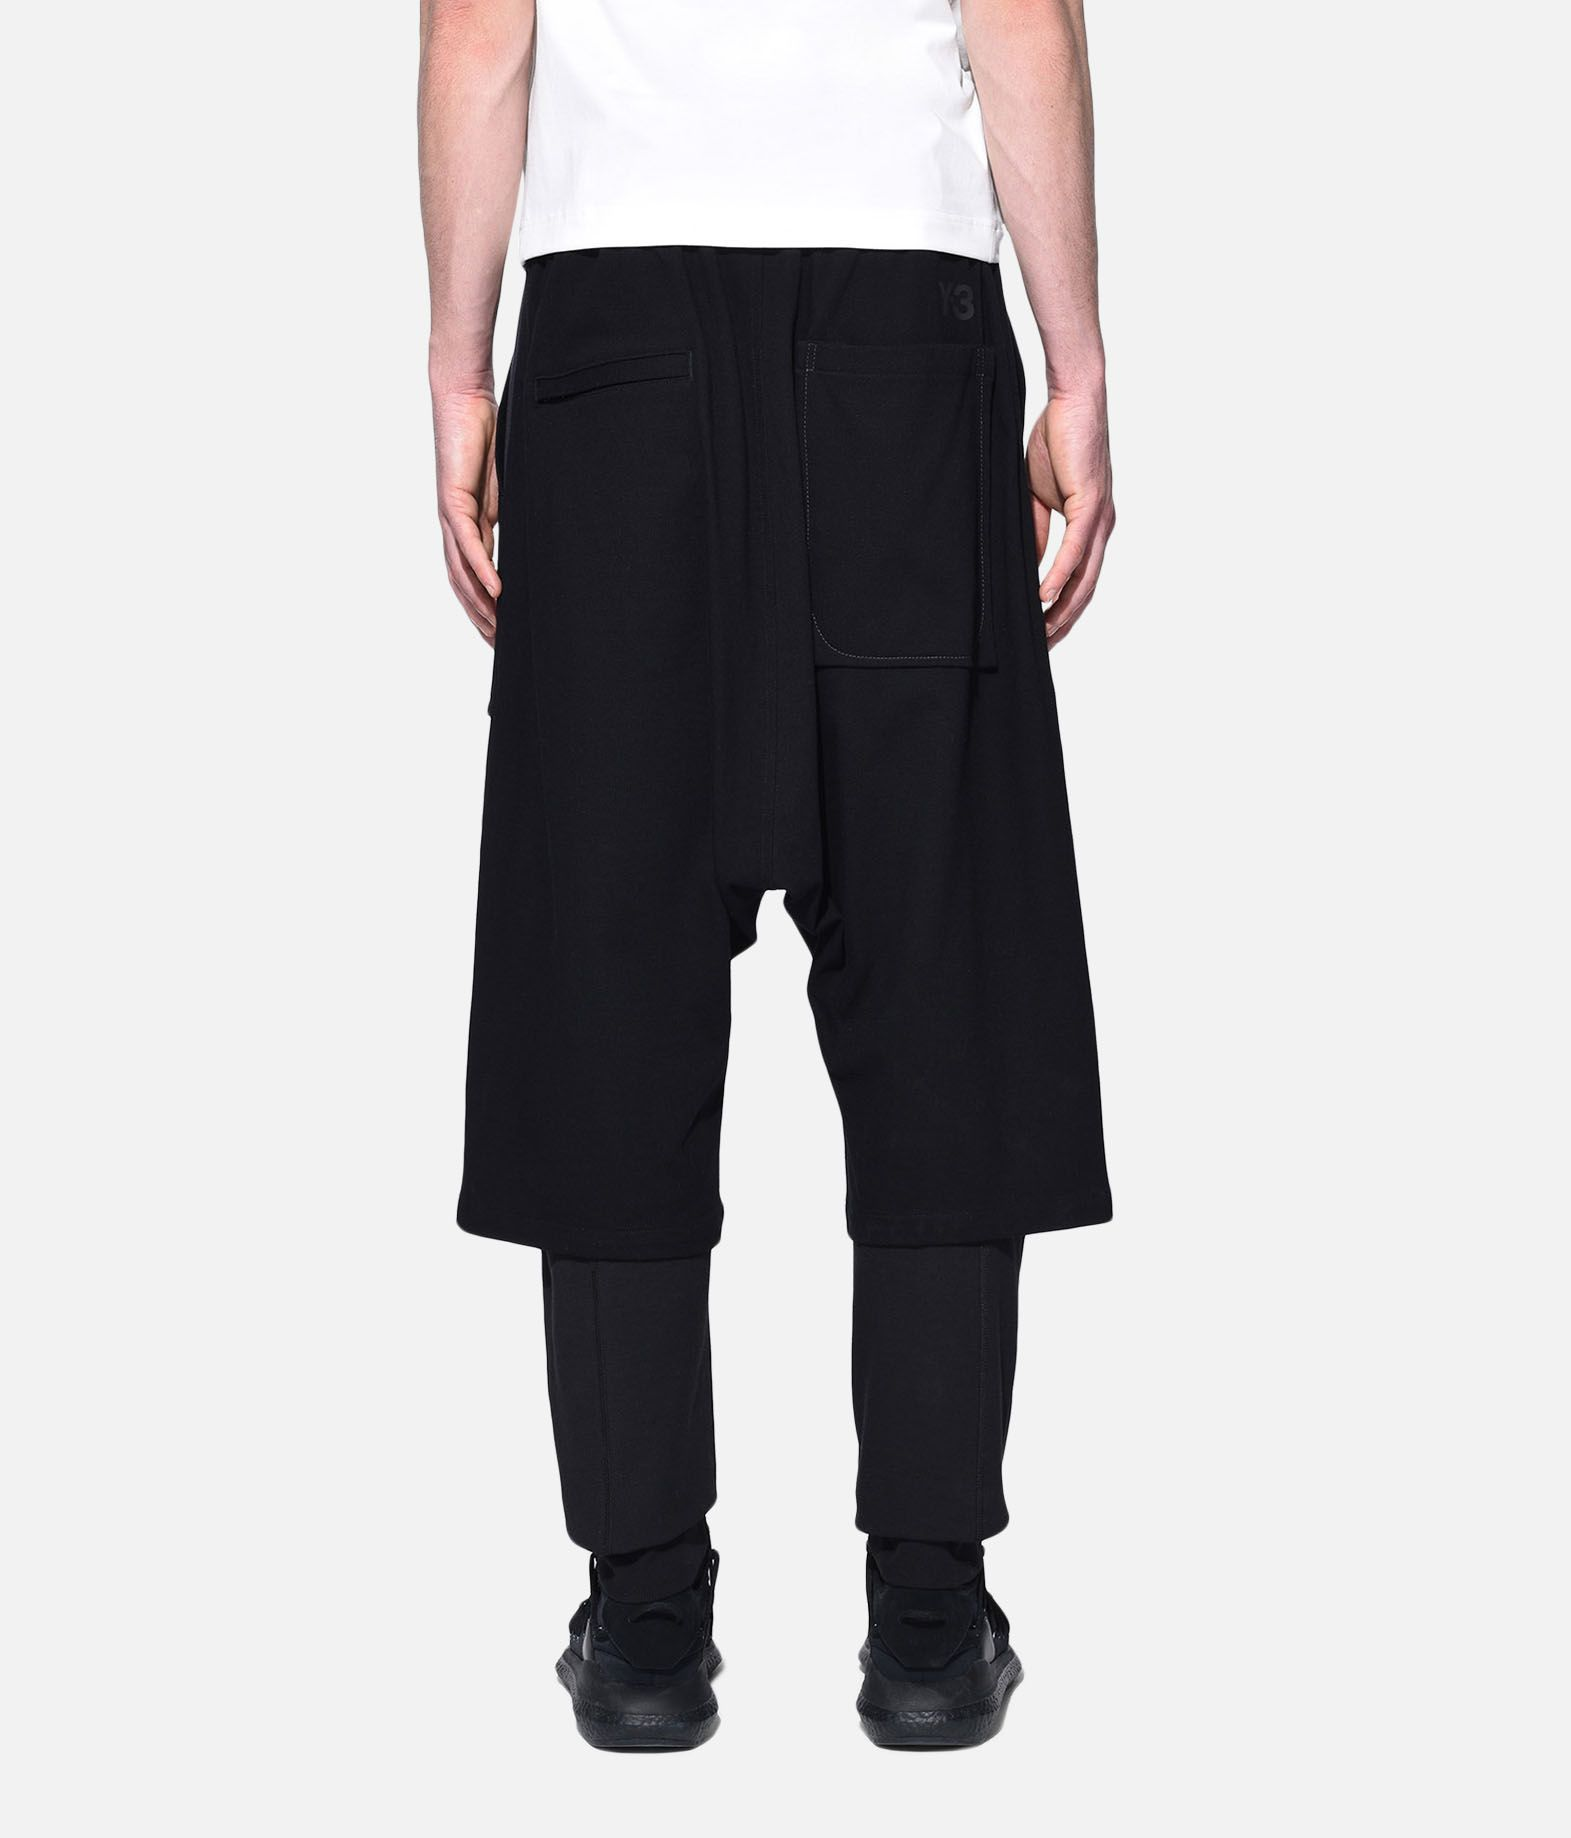 Y-3 Y-3 Sarouel Shorts Sweat shorts Man d